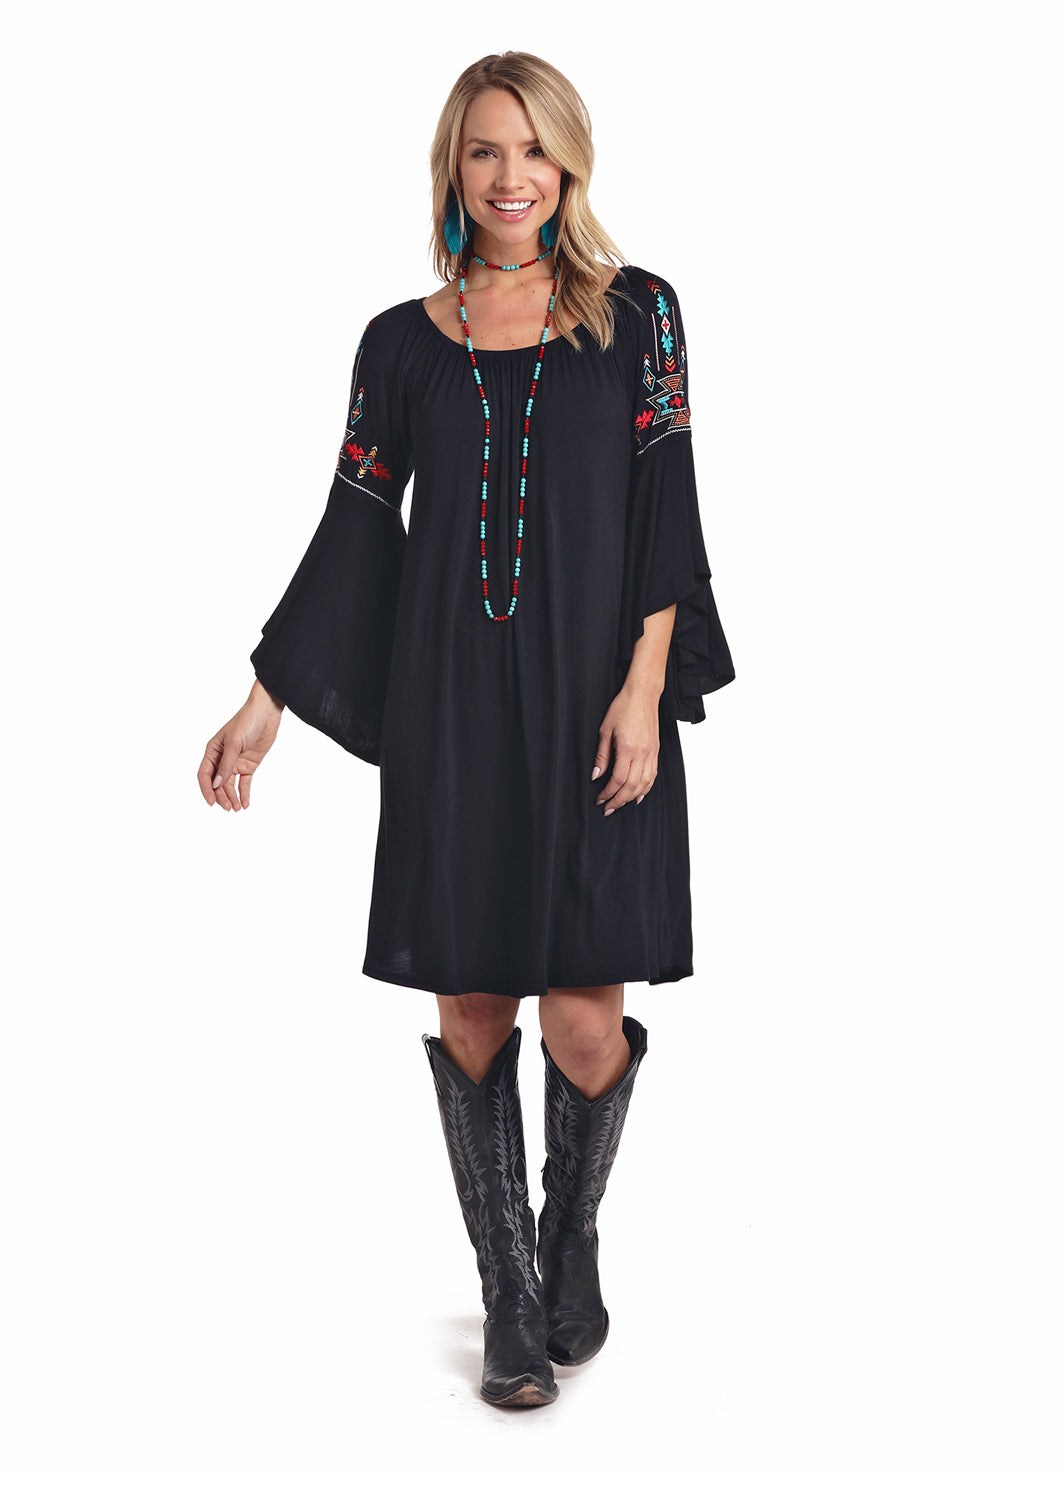 Panhandle Navy Embroidery Women's Dress